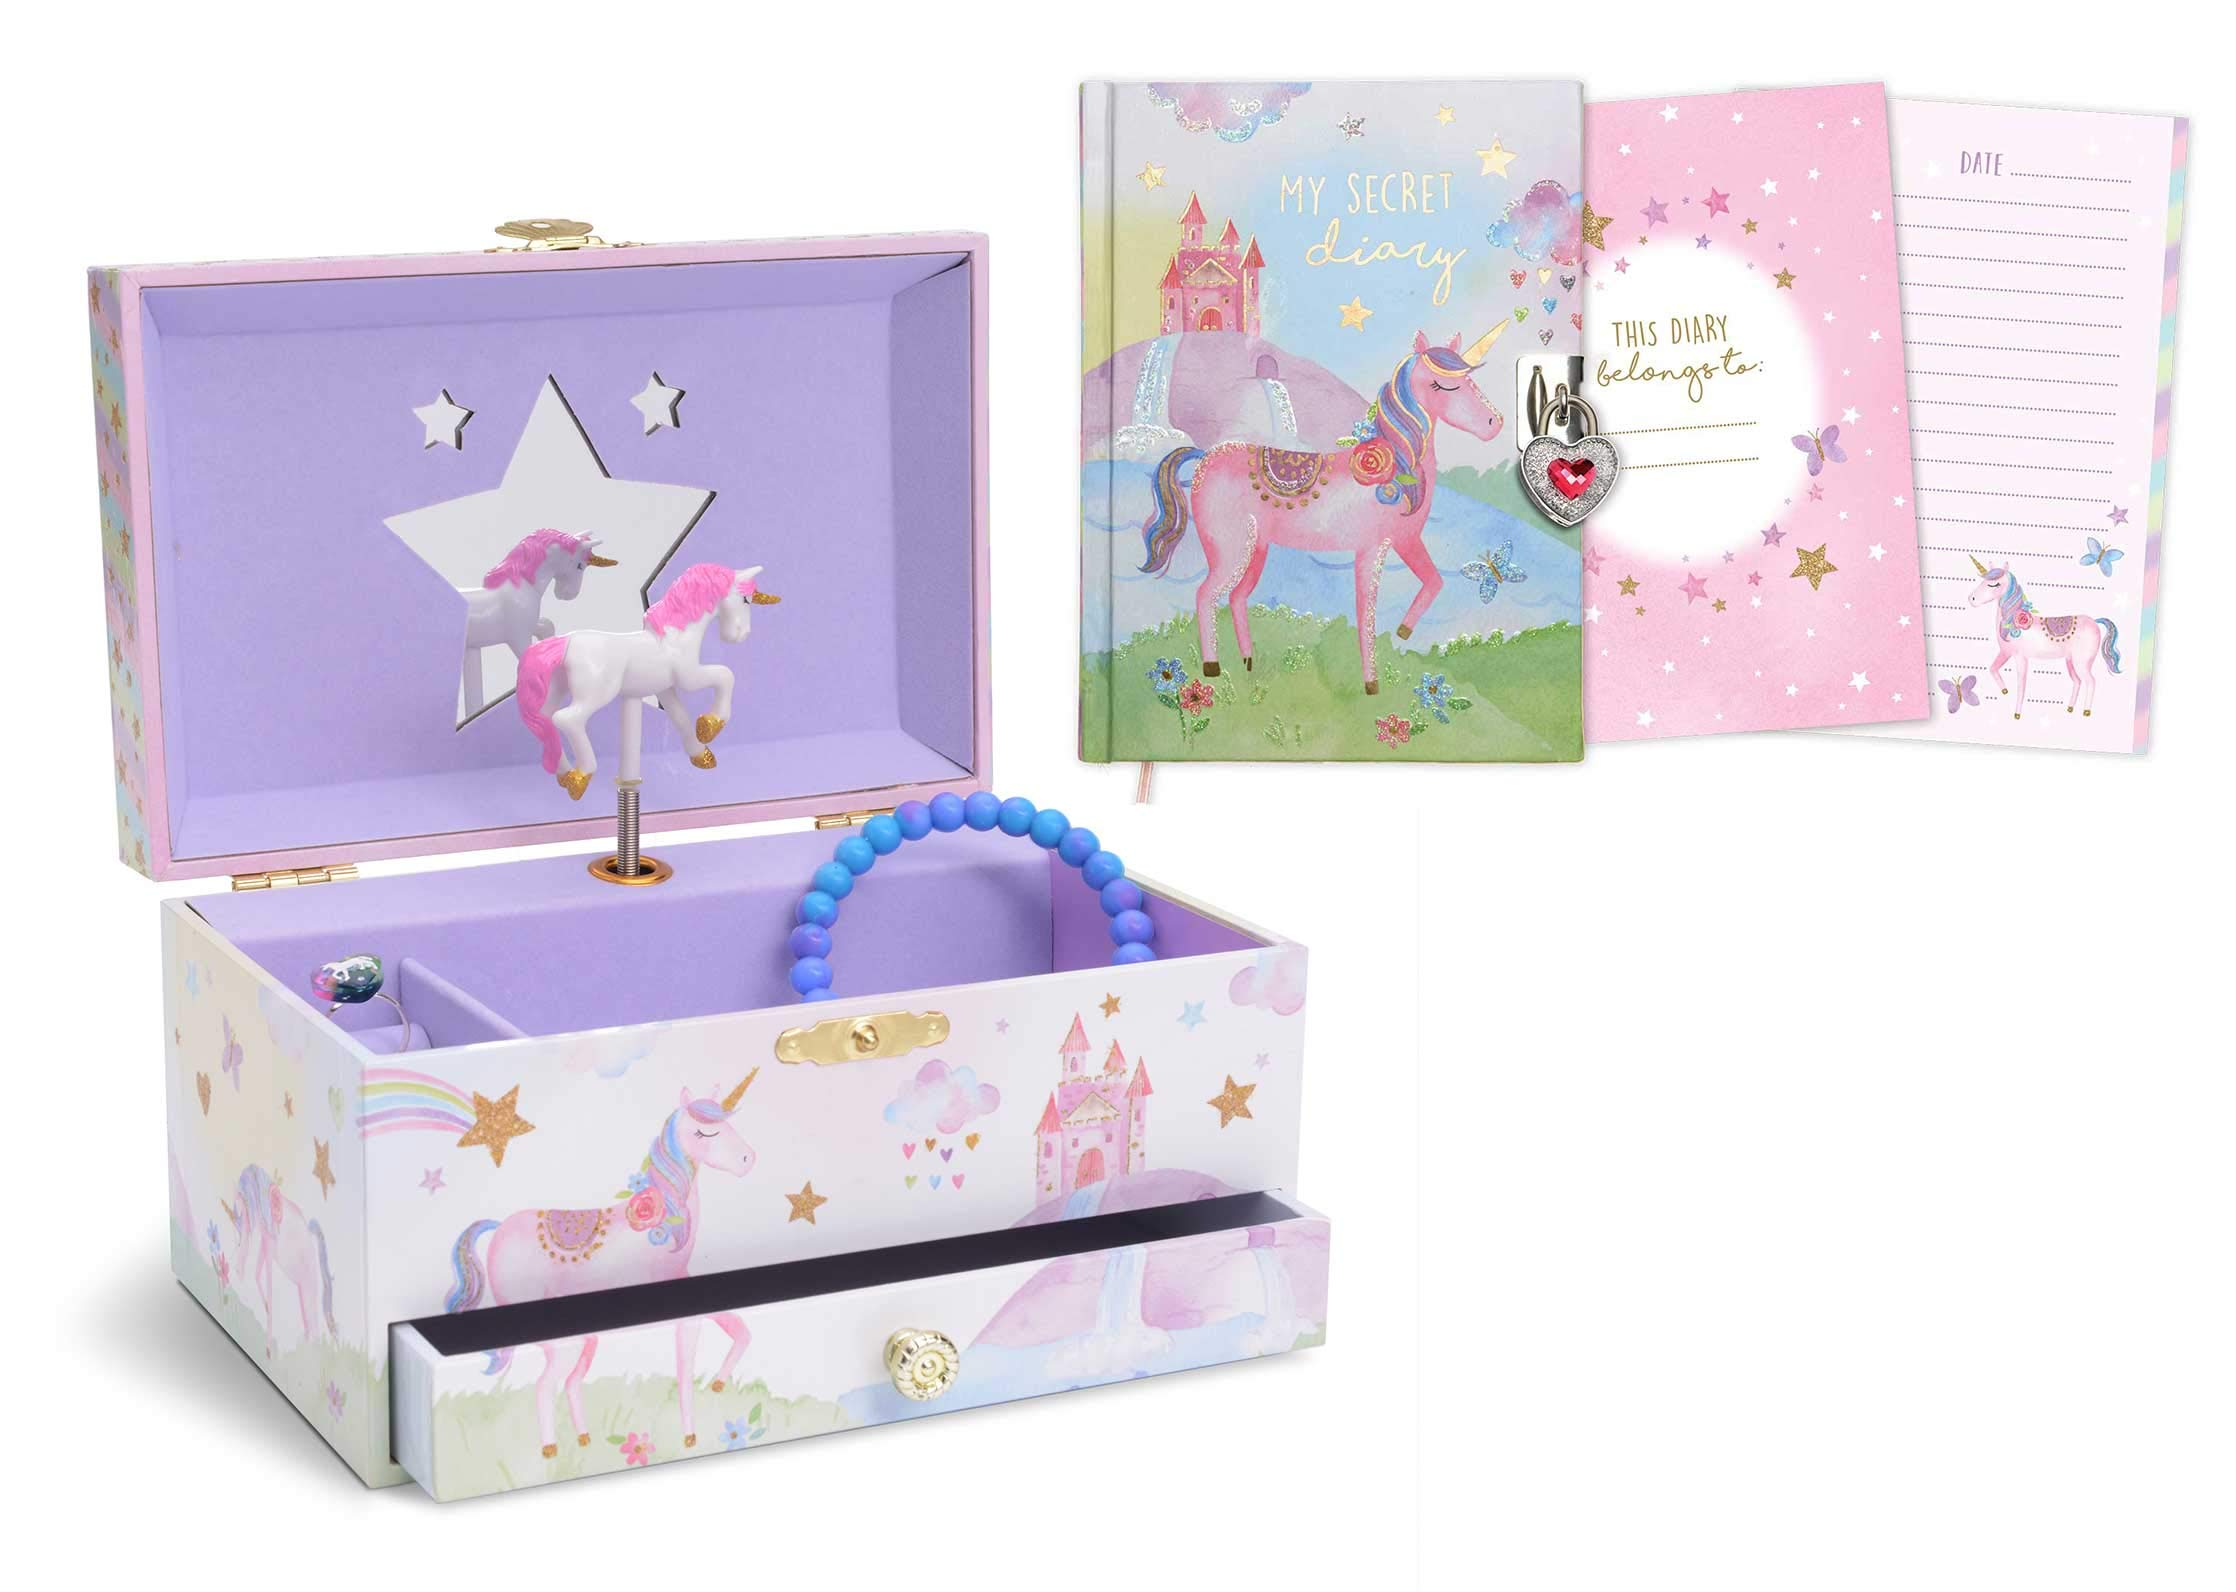 JewelKeeper Glitter Rainbow Unicorn Musical Jewelry Box with Pullout Drawer and Matching Diary with Lock and Key Gift Set